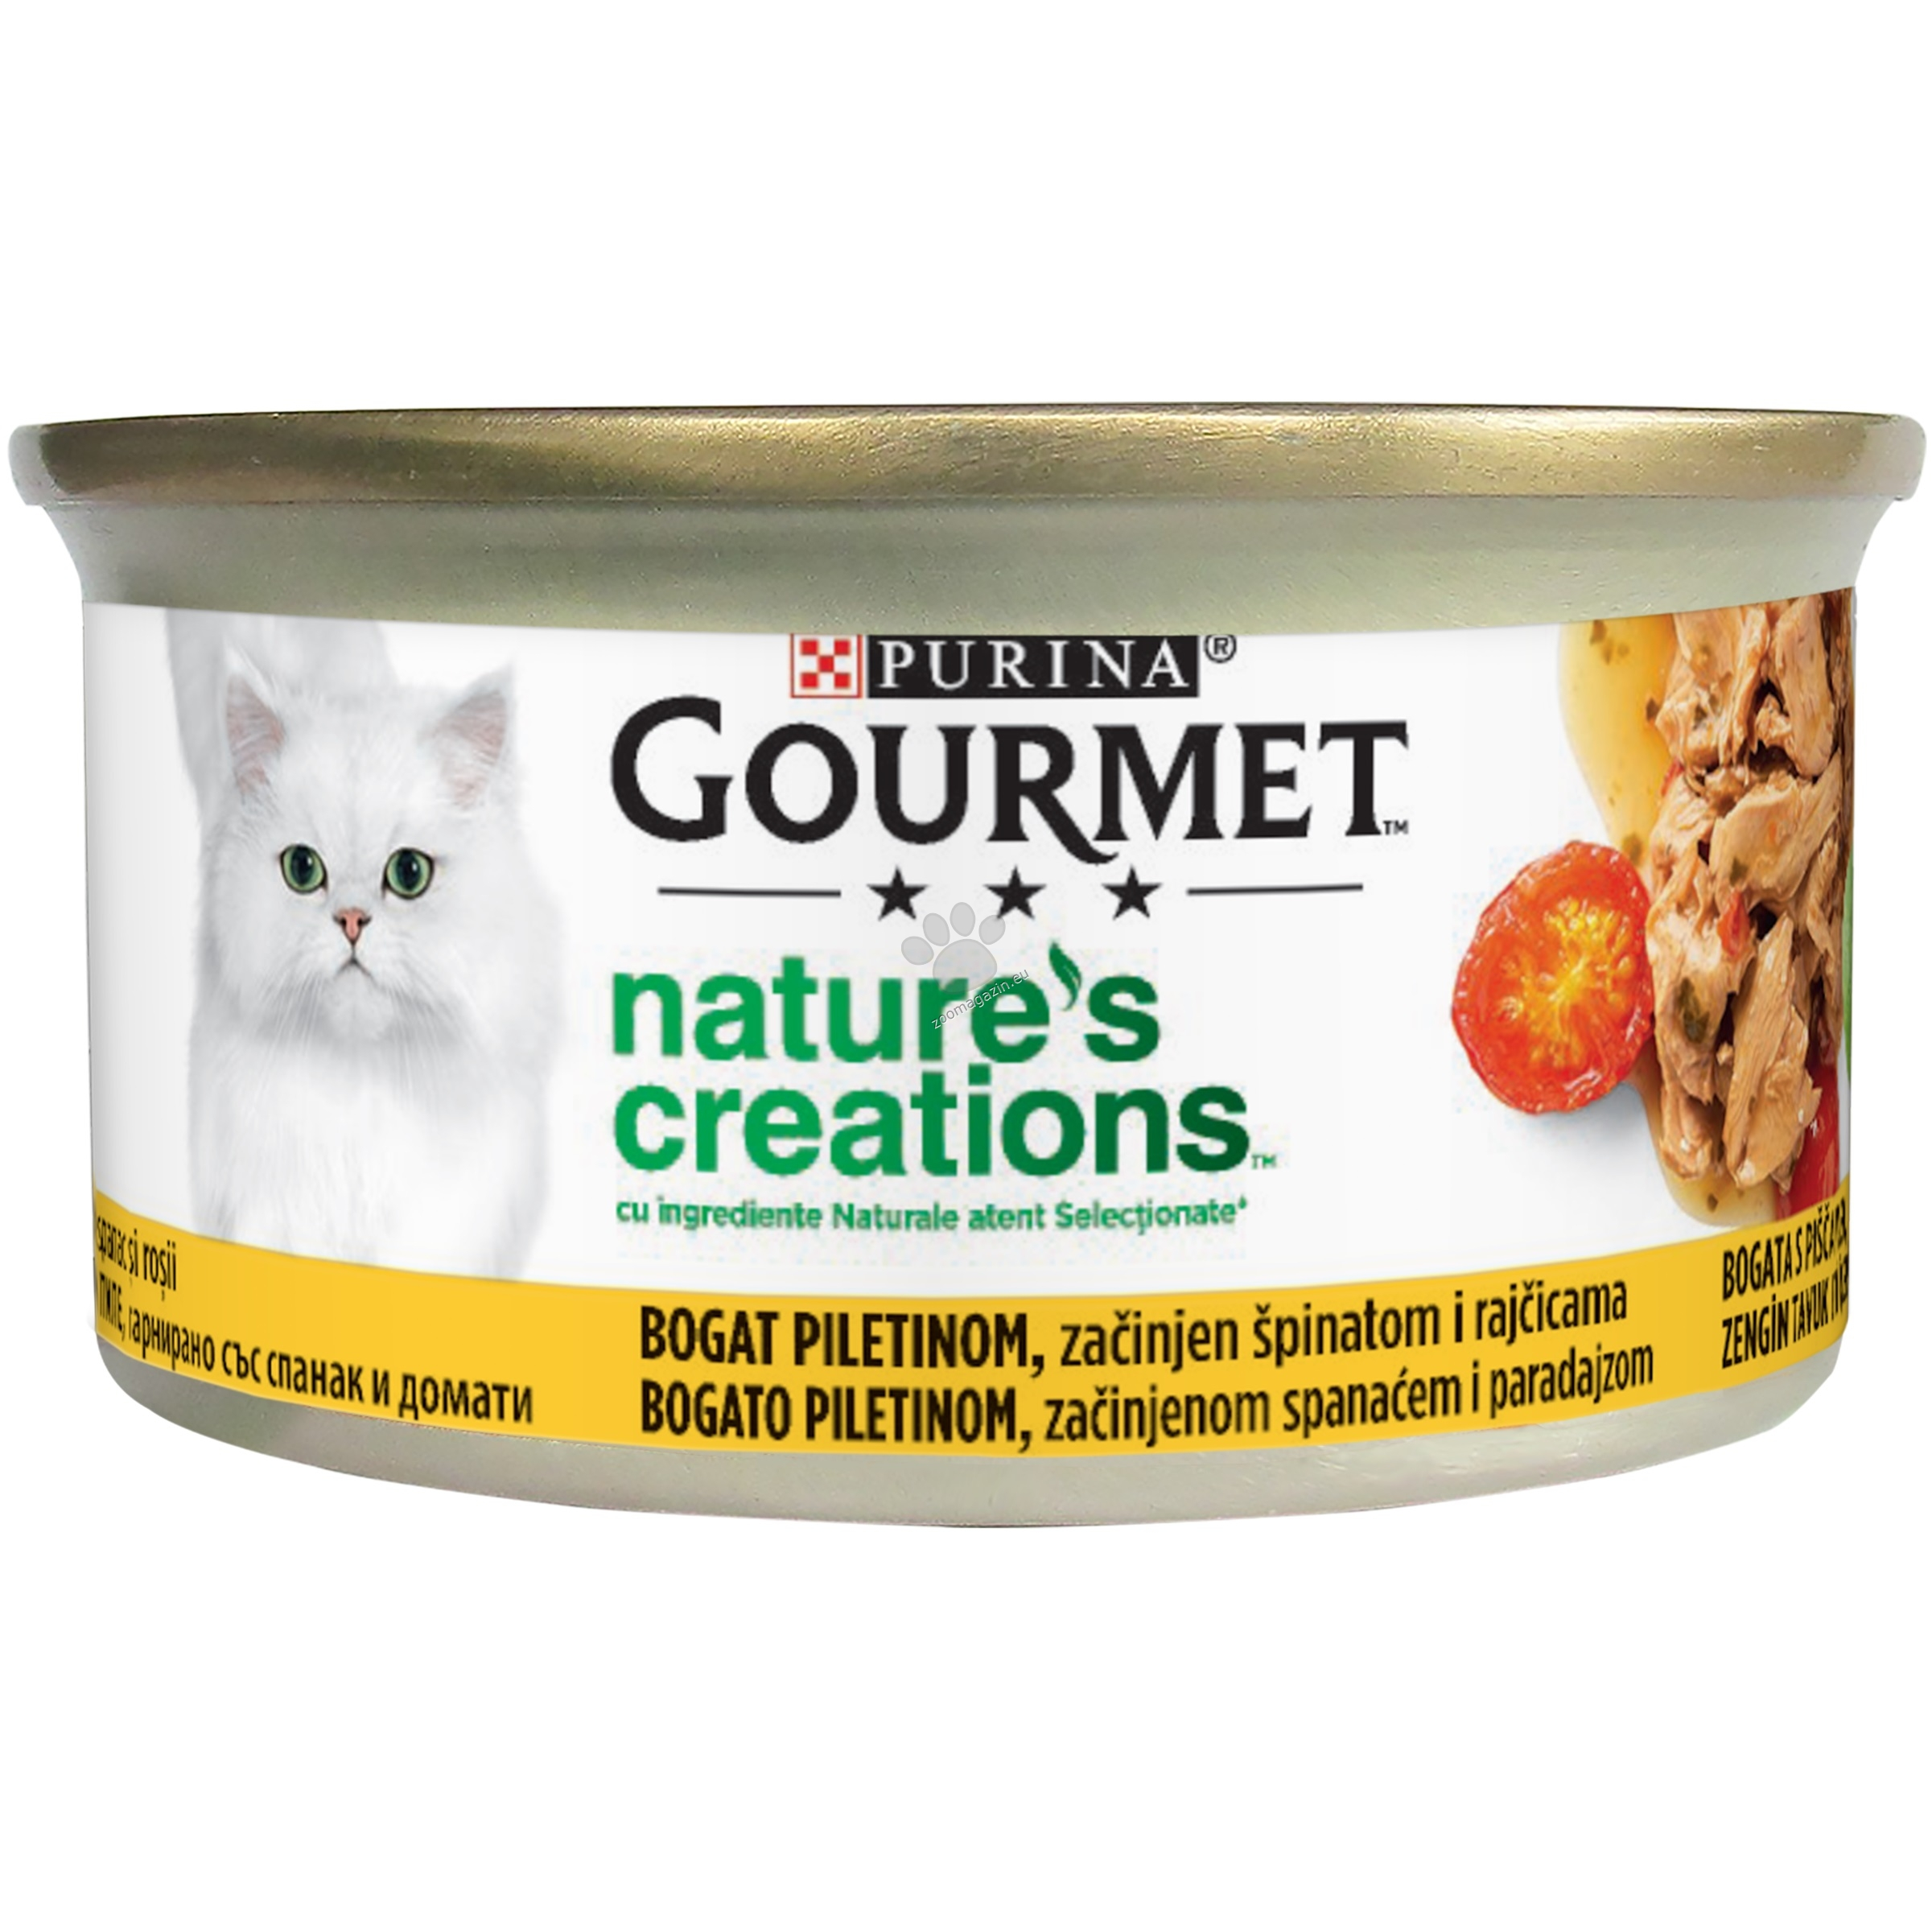 Gourmet Gold Natures Creations Chicken - пилешко месо със спанак и домати 85 гр.